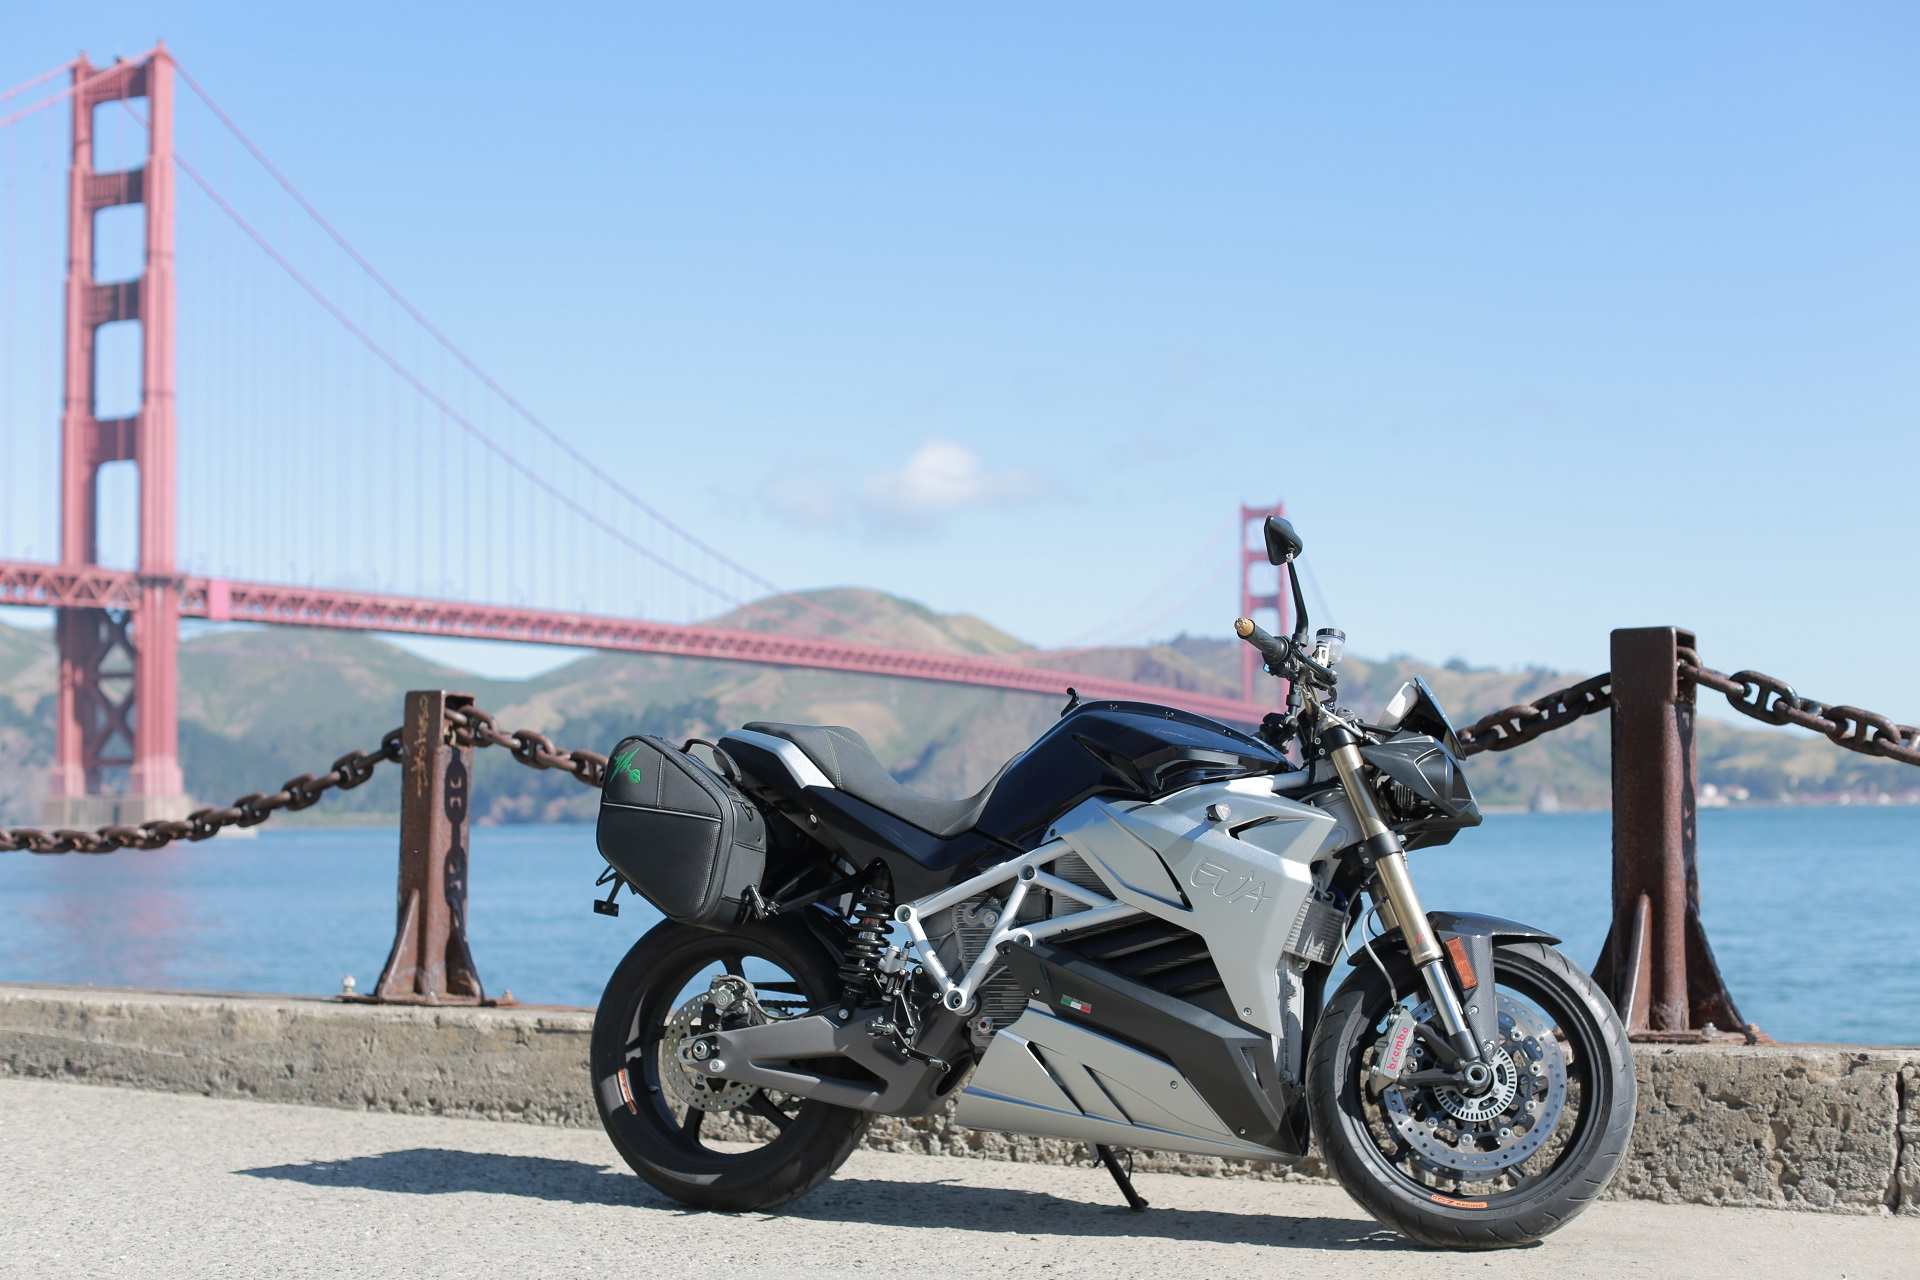 Energica Eva Test Ride Of Electric Motorcycle With Dc Fast Charging Video